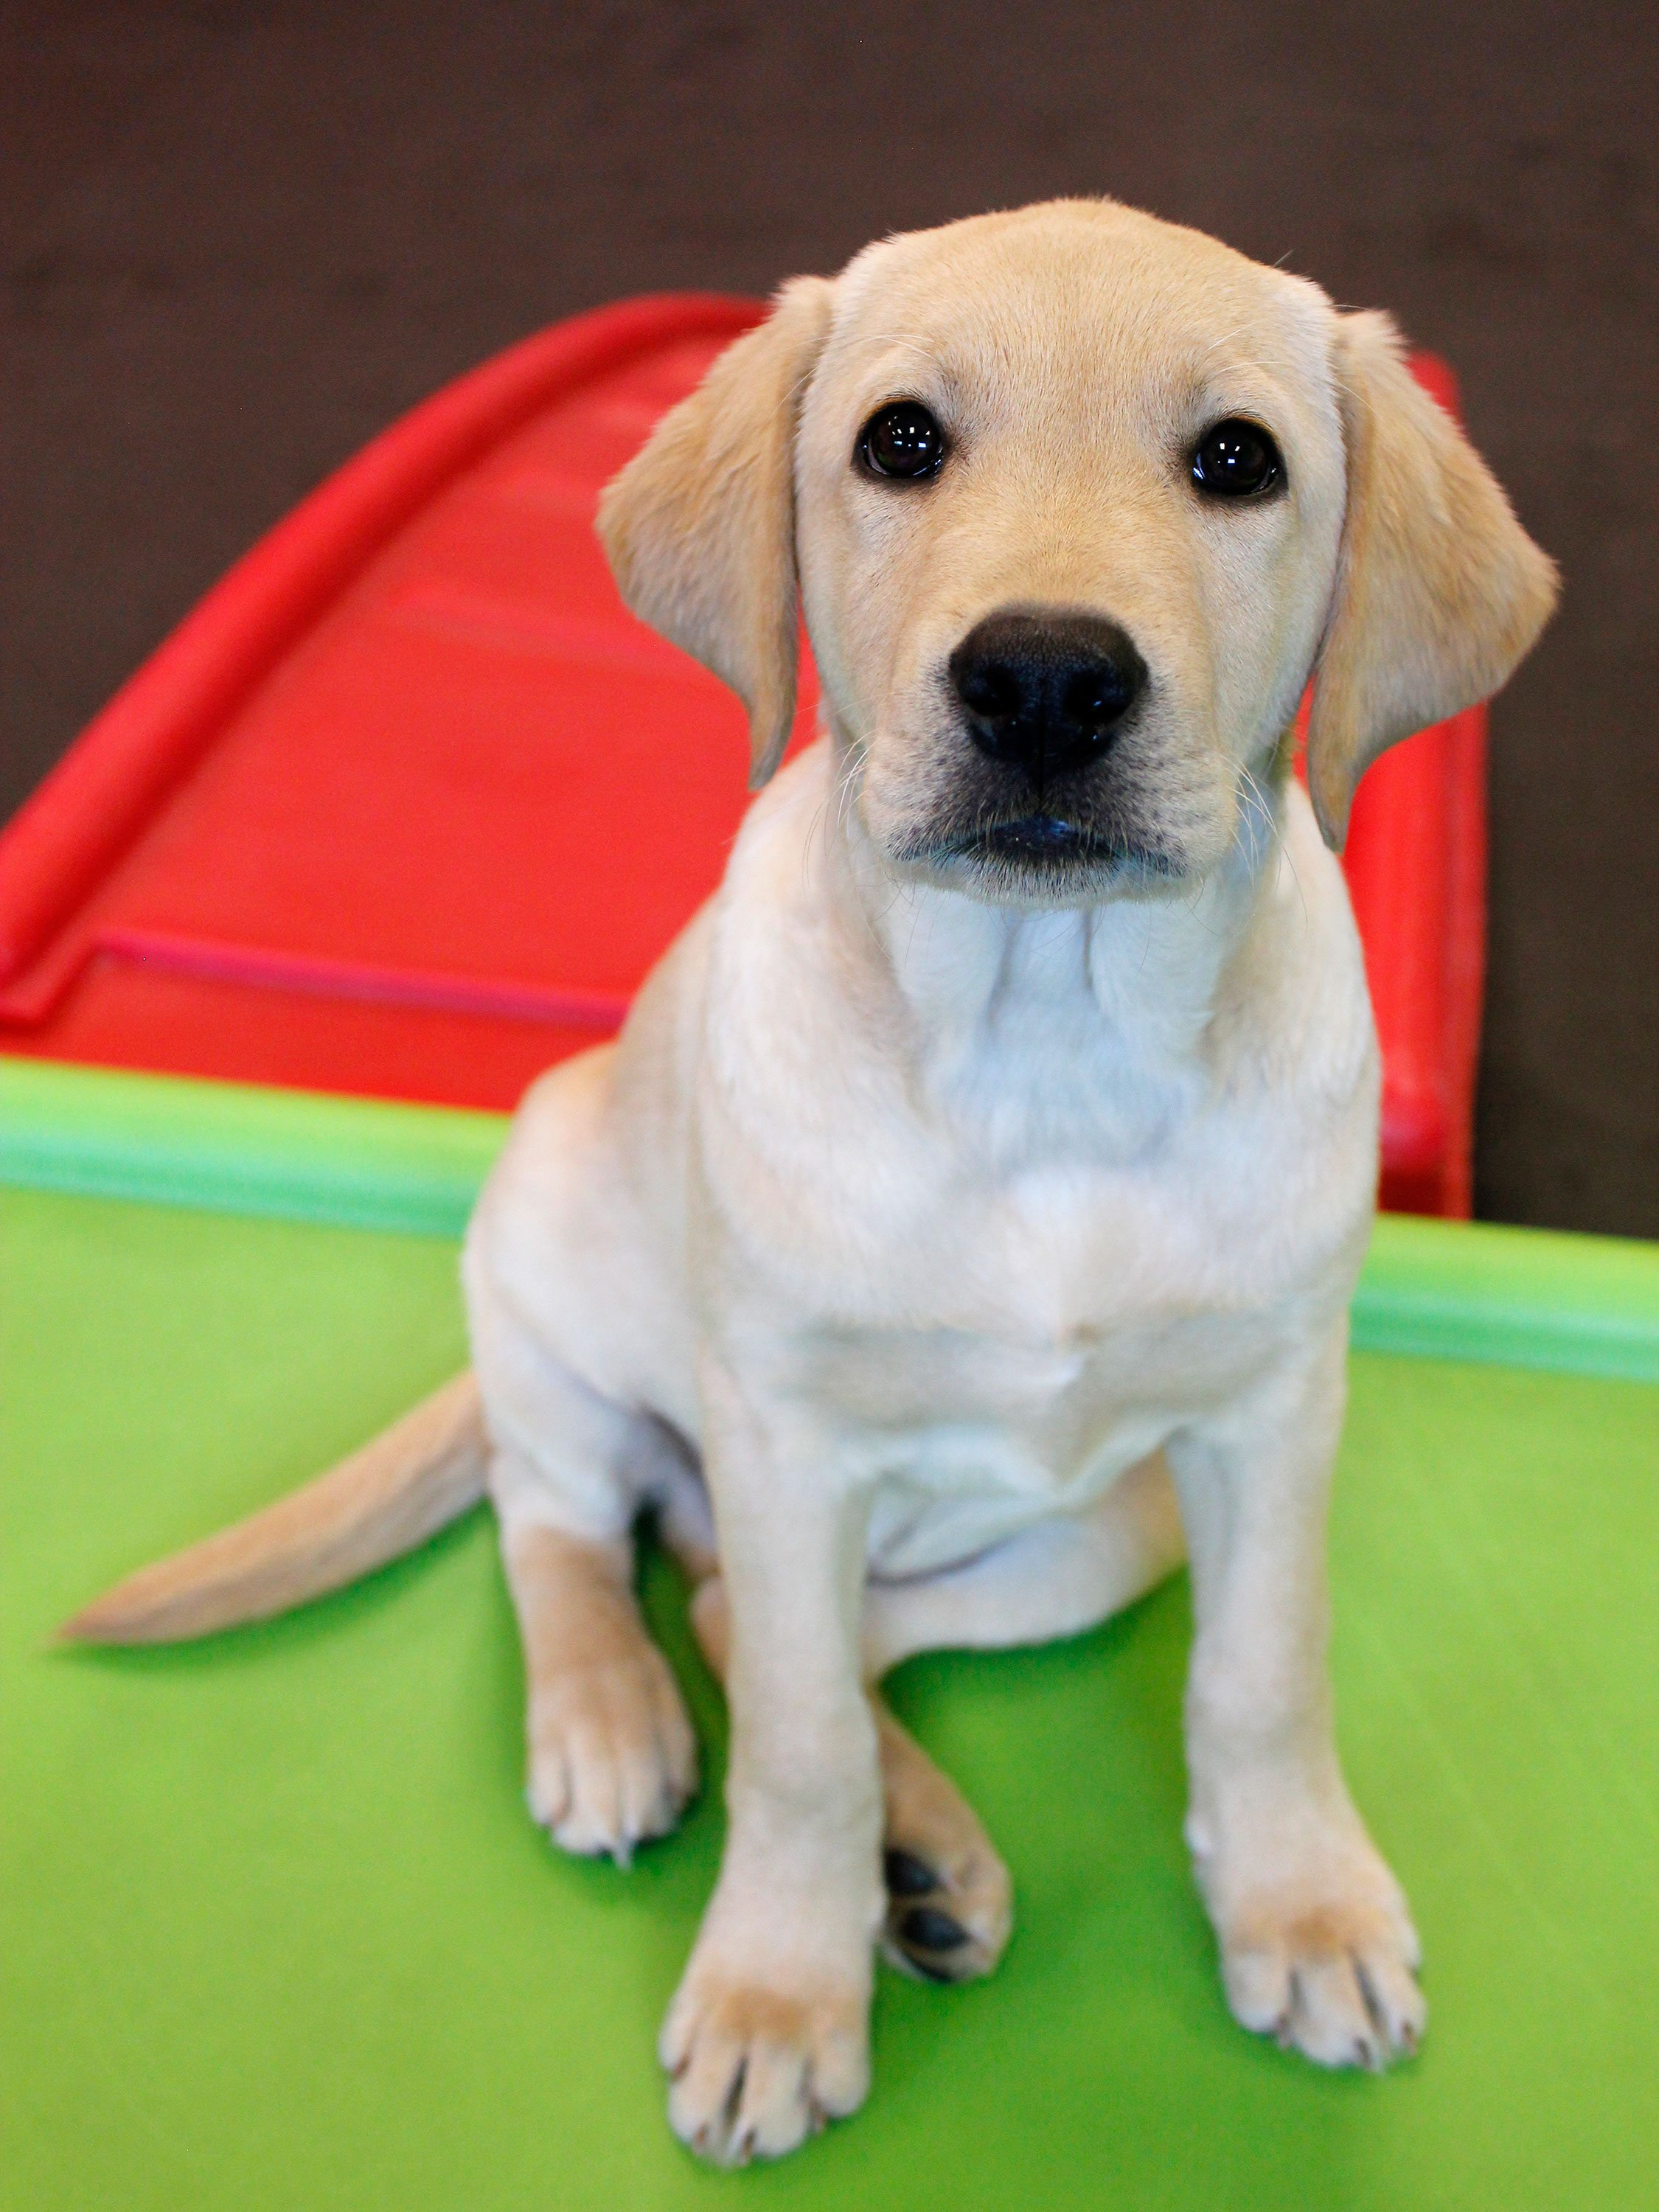 cute lab puppy dogtopia mississauga daycare